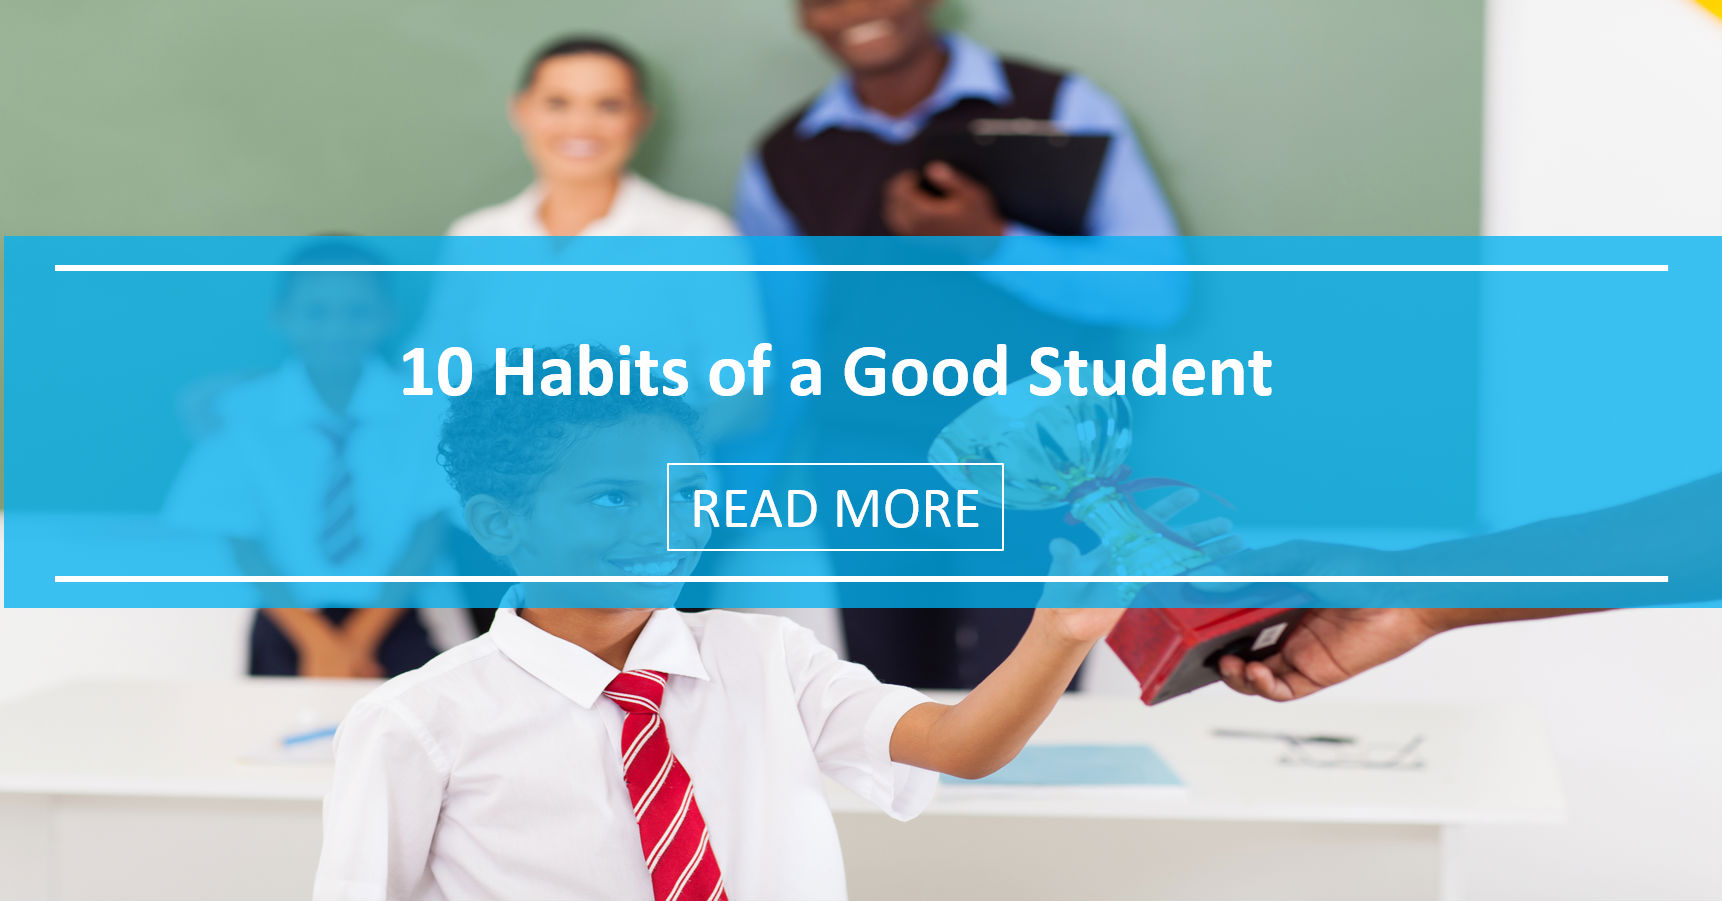 10 Habits of a Good Student